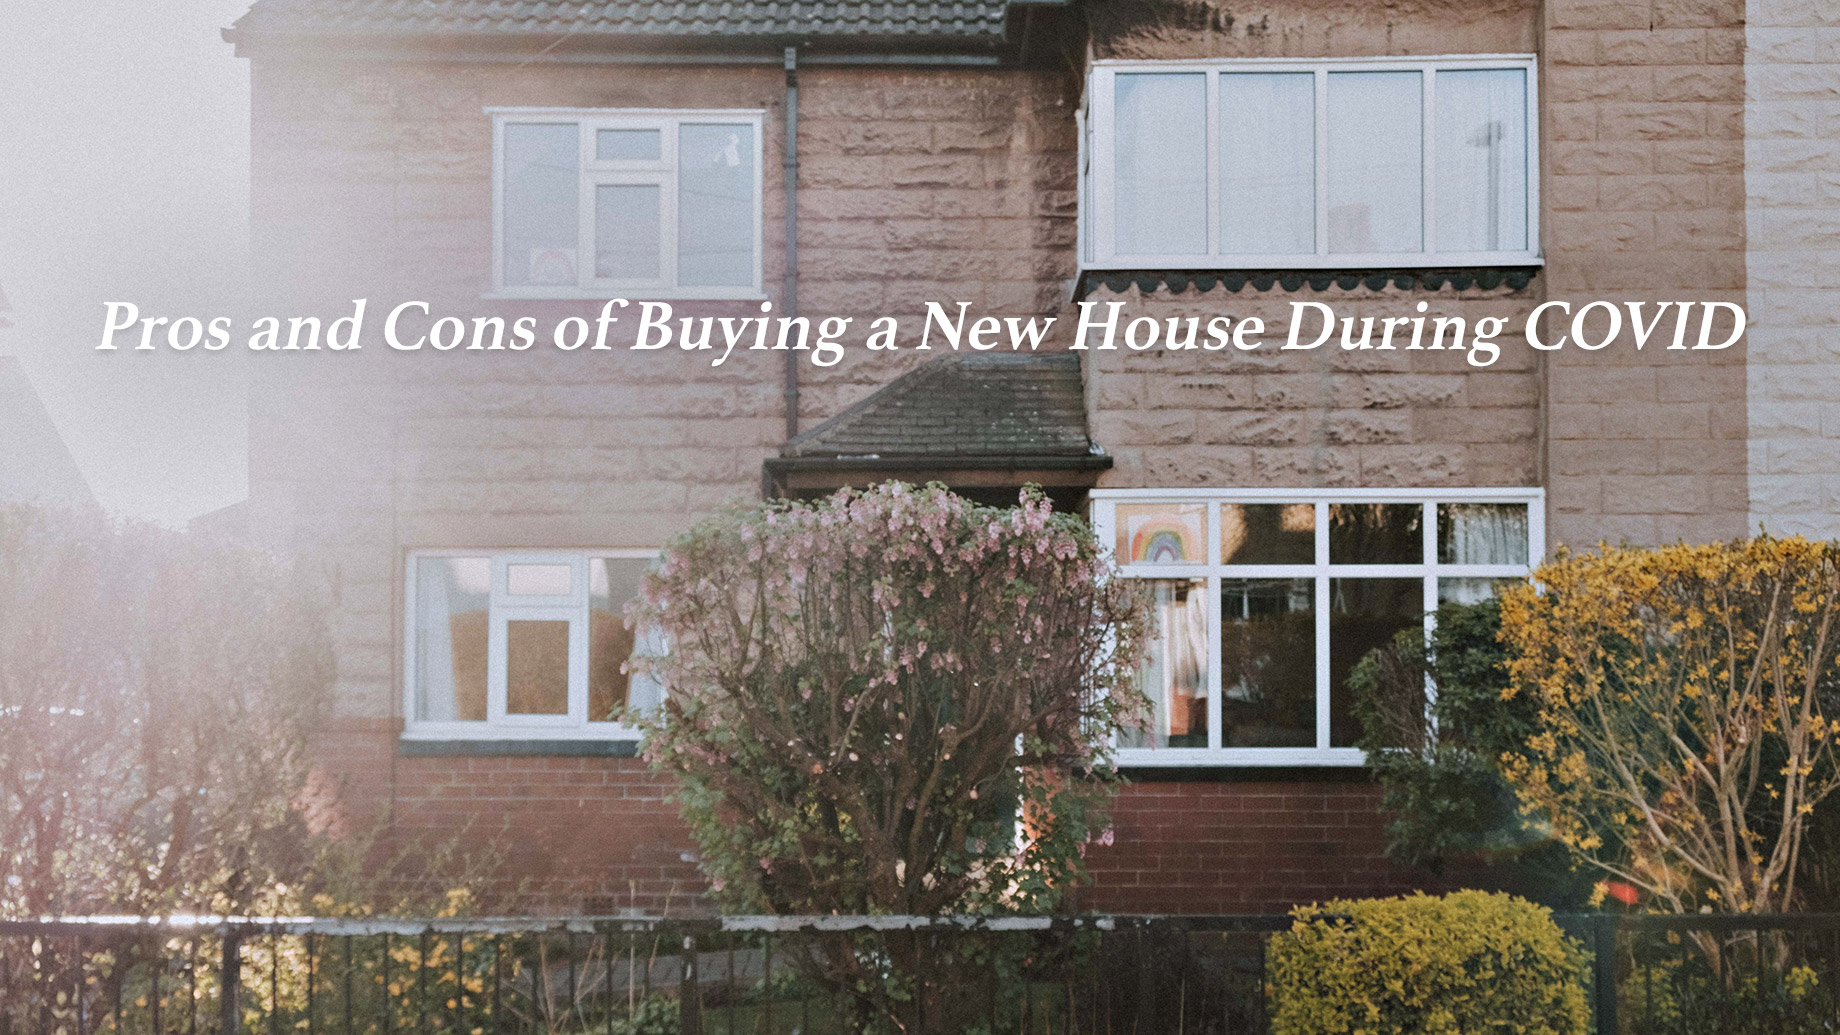 Pros and Cons of Buying a New House During COVID